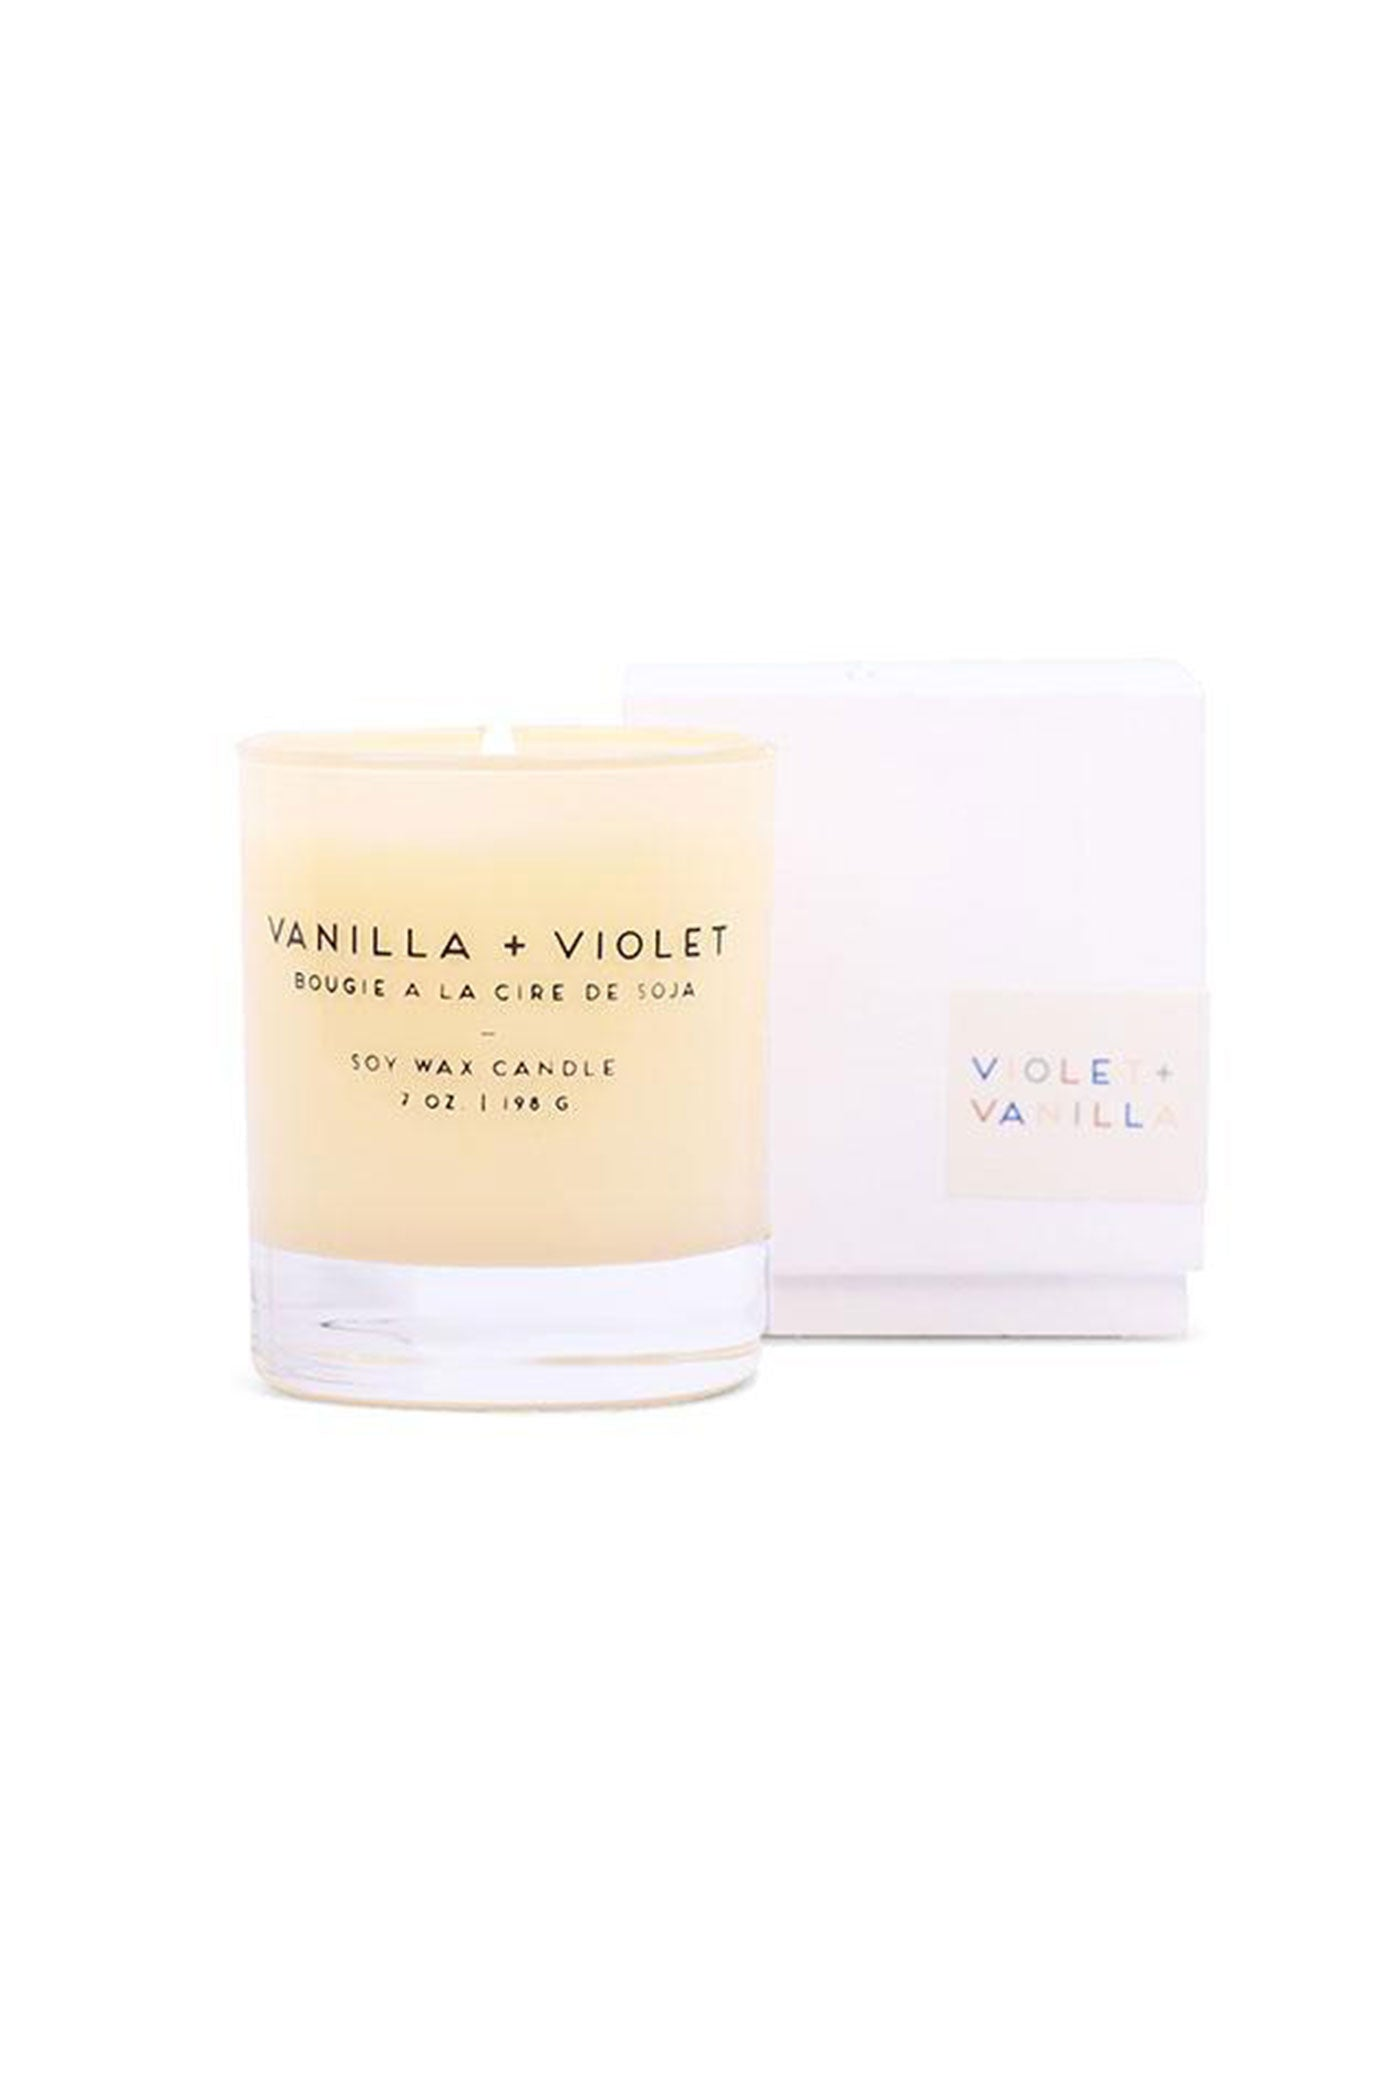 Violet + Vanilla 7oz Candle by Paddywax